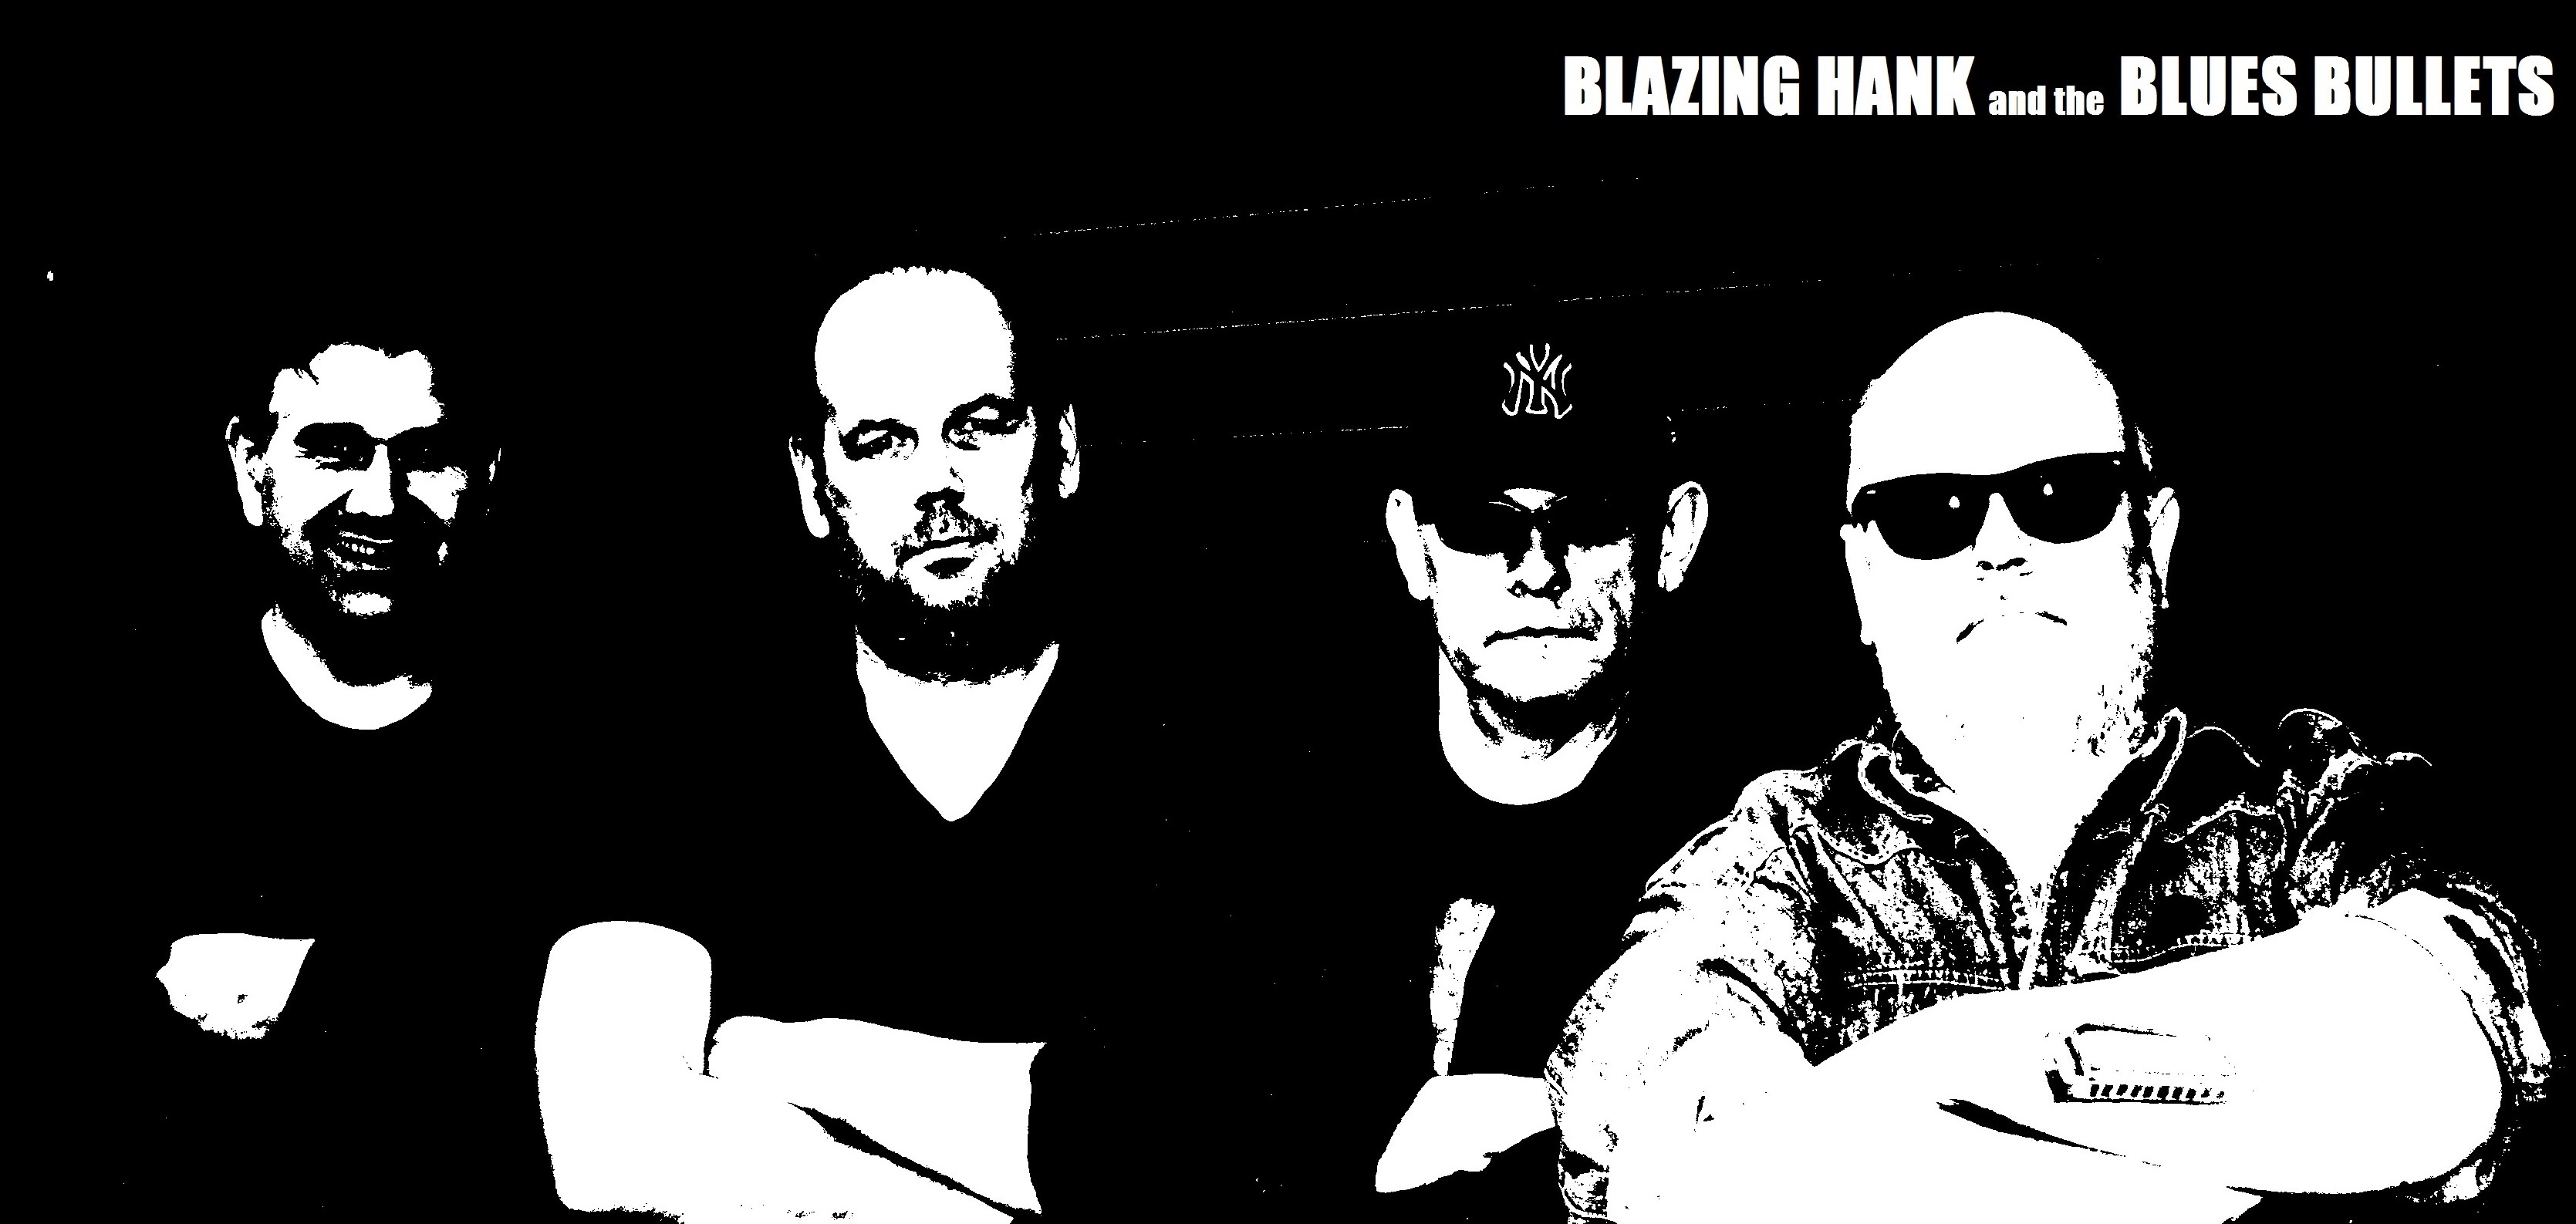 Blazing Hank and the Blues Bullets